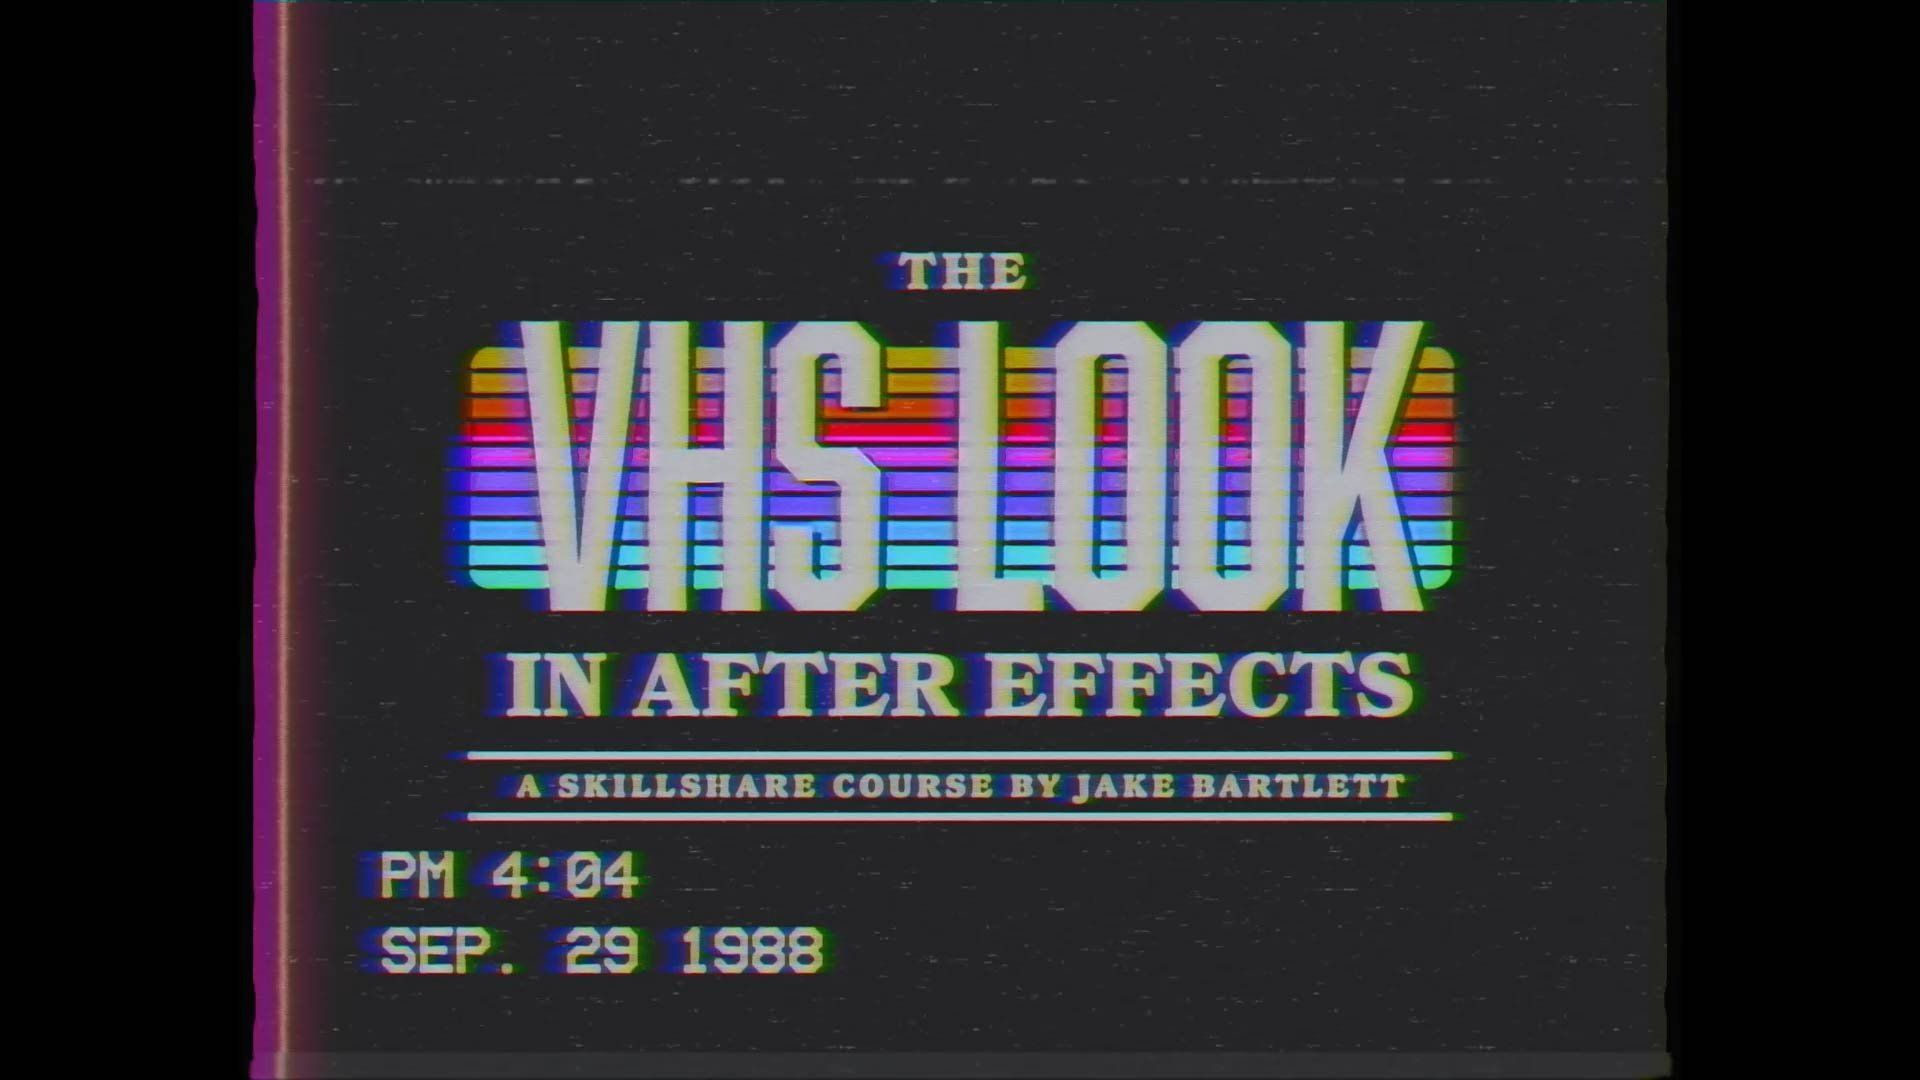 original 1 - AE复古80年代视效风格制作视频教程Skillshare - The VHS Look in After Effects